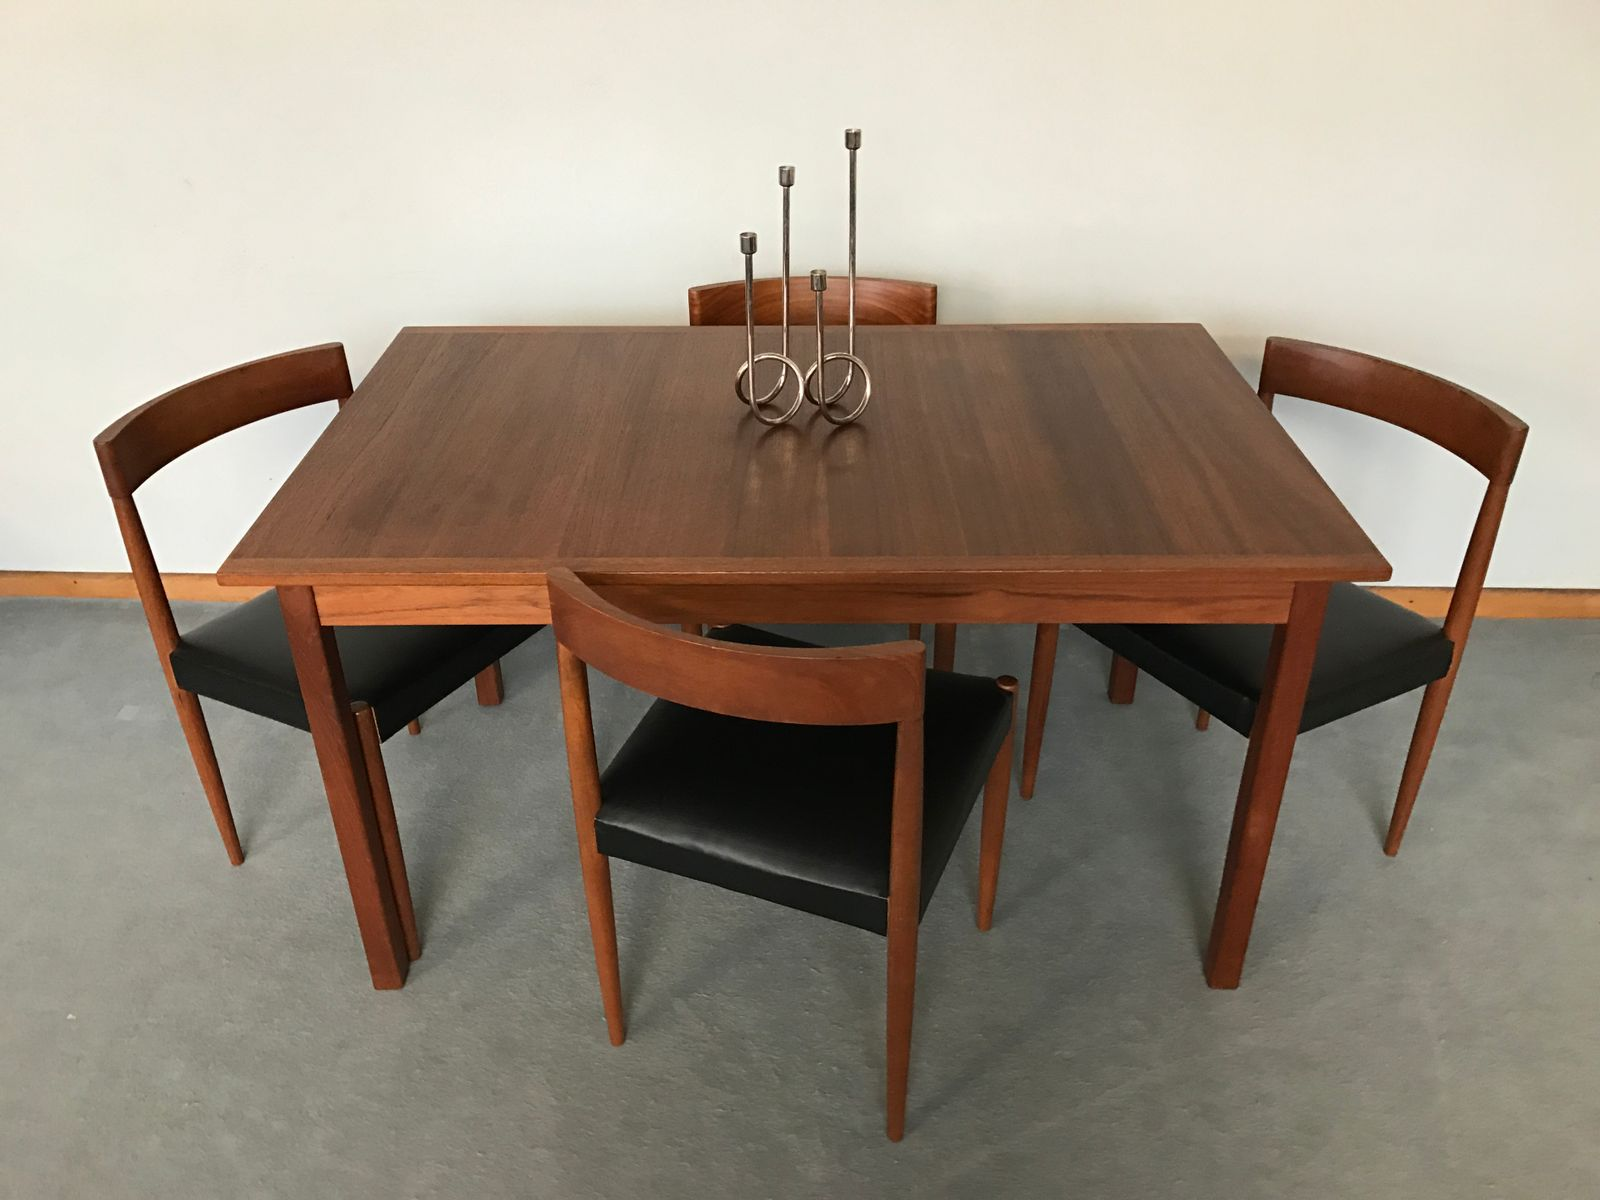 table de salle manger vintage scandinave en teck par nils jonsson en vente sur pamono. Black Bedroom Furniture Sets. Home Design Ideas